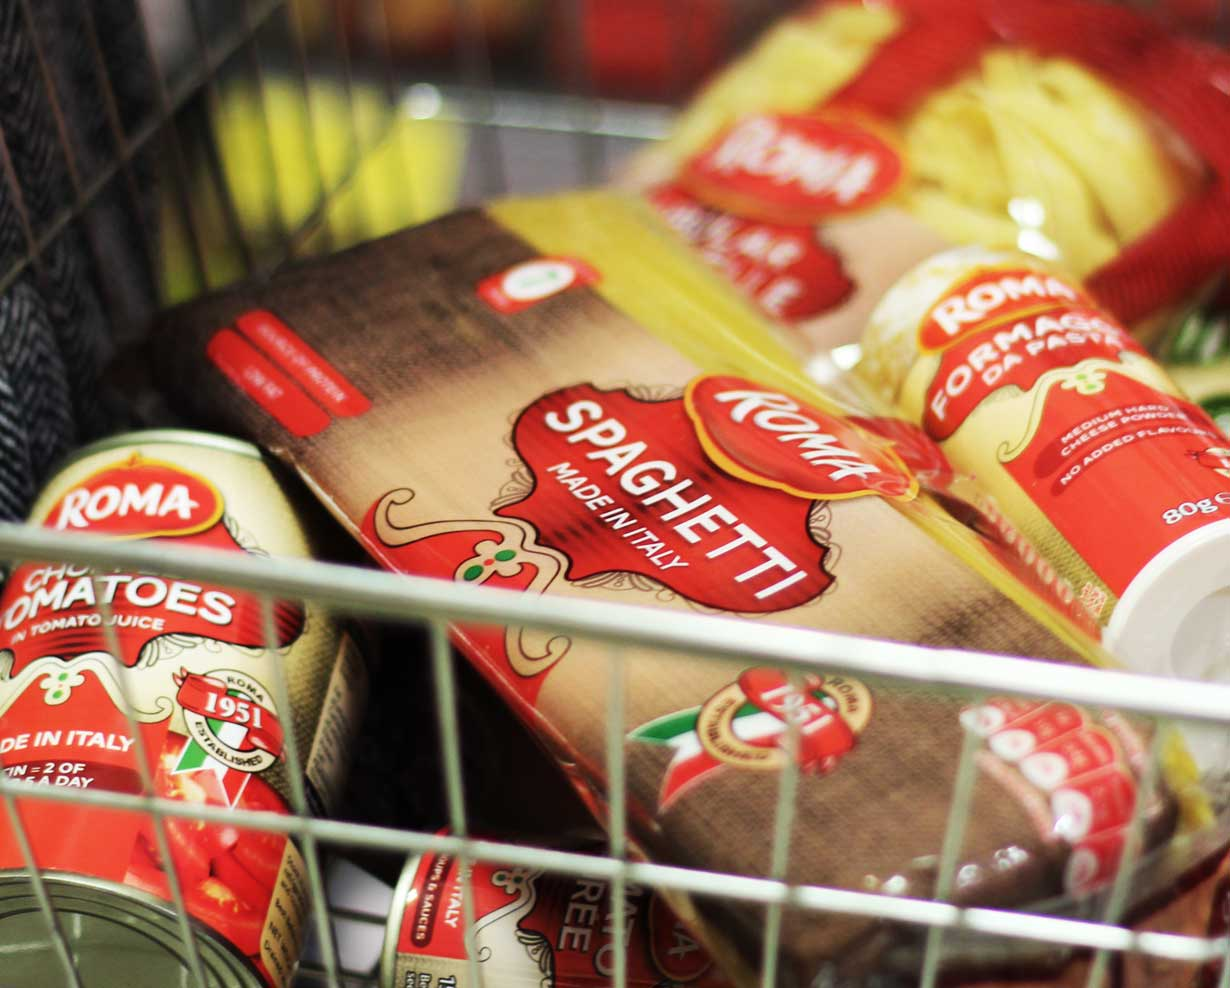 Roma products in a shopping basket